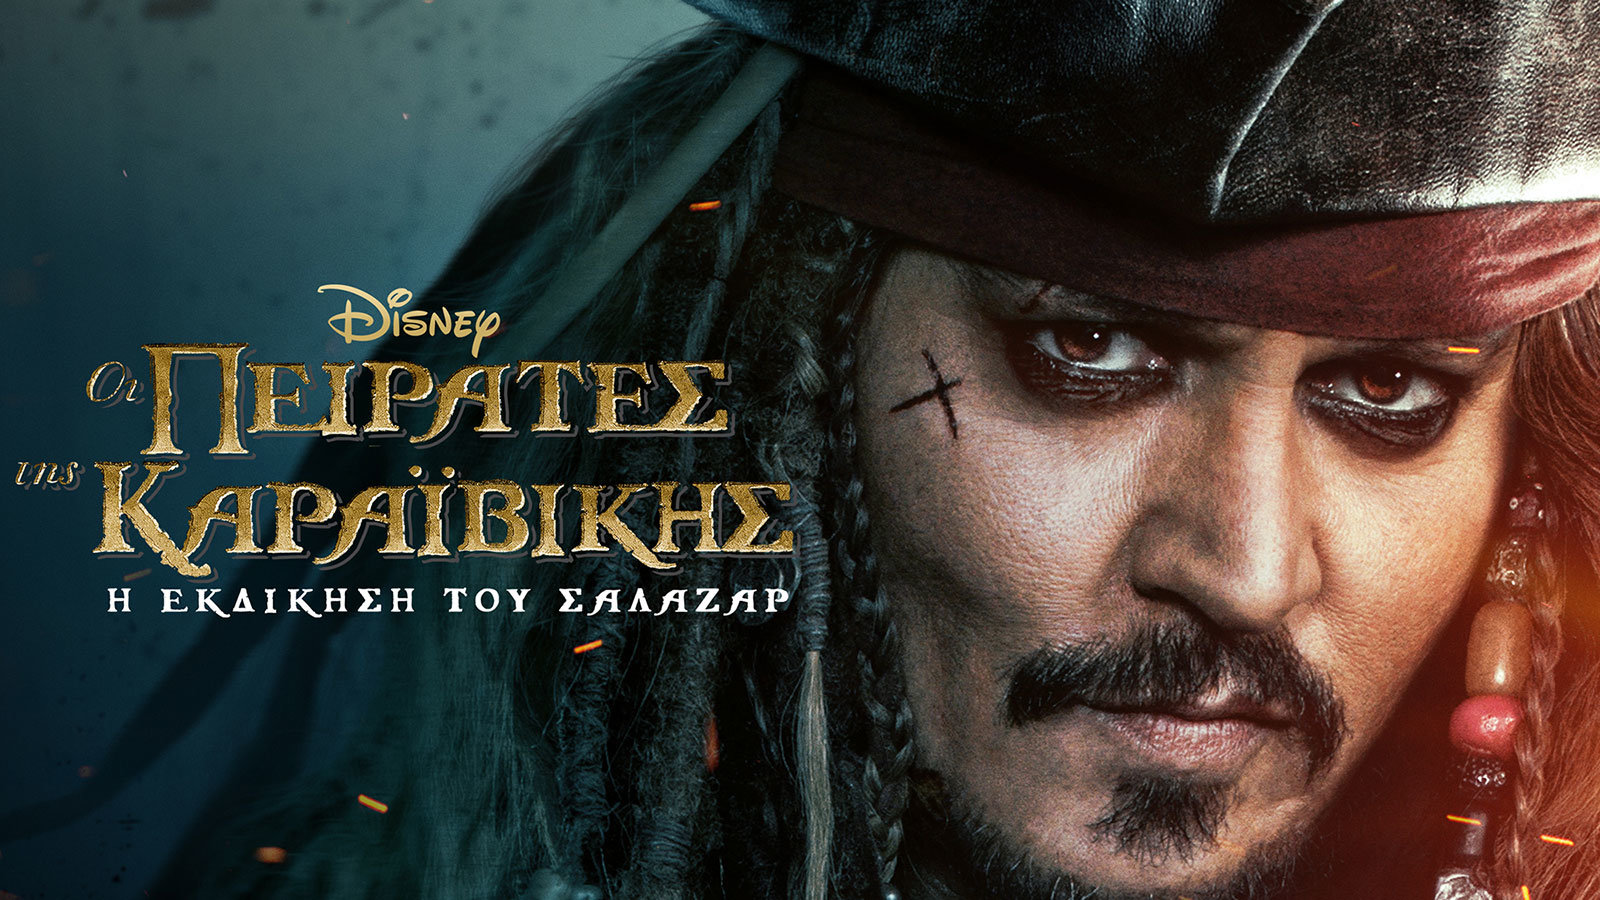 Pirates of the Caribbean Greek title design for Netflix